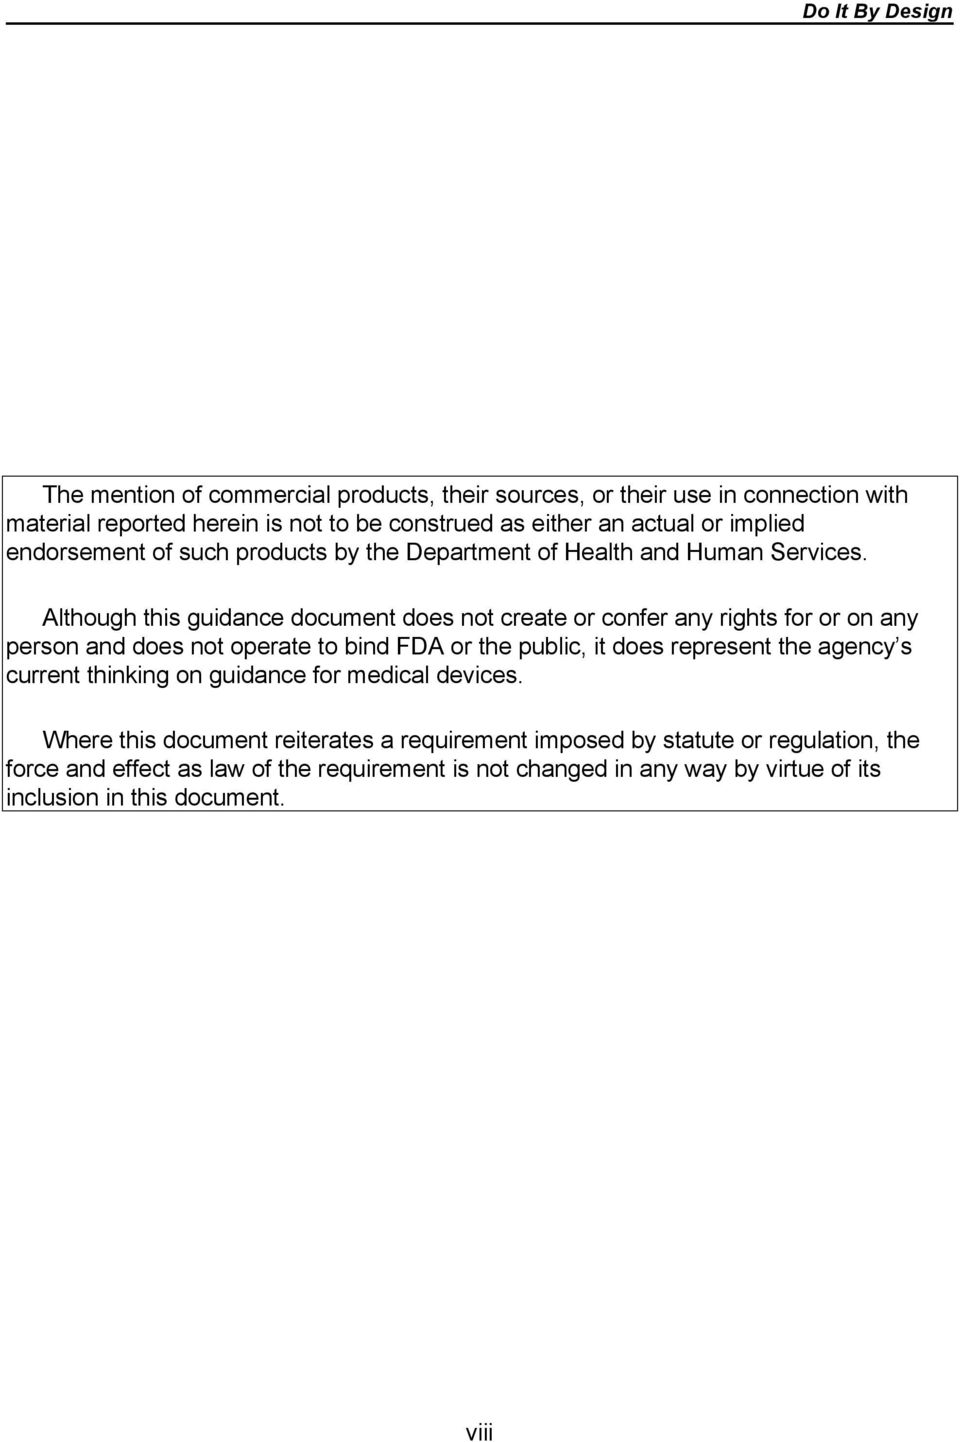 Although this guidance document does not create or confer any rights for or on any person and does not operate to bind FDA or the public, it does represent the